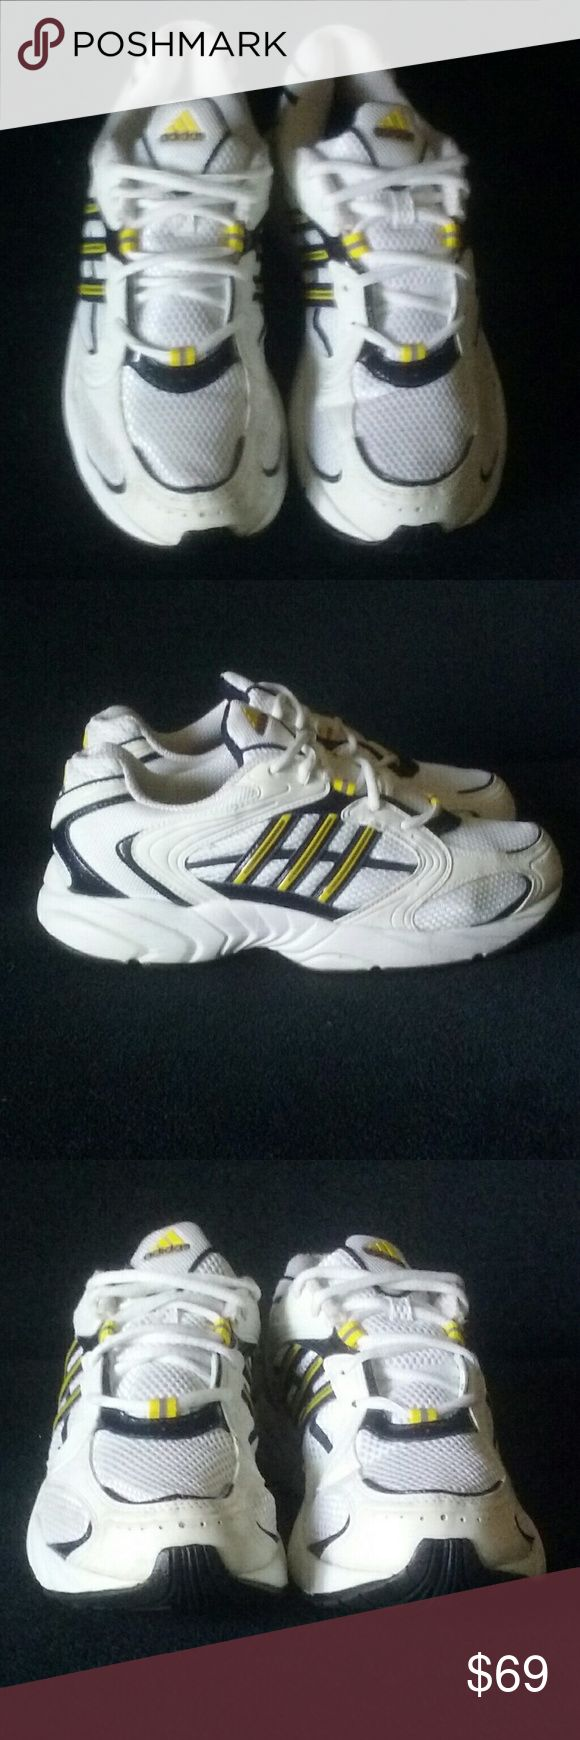 Adidas Men's Running Sneakers 8.5 NWT NWOT Men's Adidas Running Shoes Size: 8.5 Color: White   Mint condition. See photos. adidas Shoes Athletic Shoes